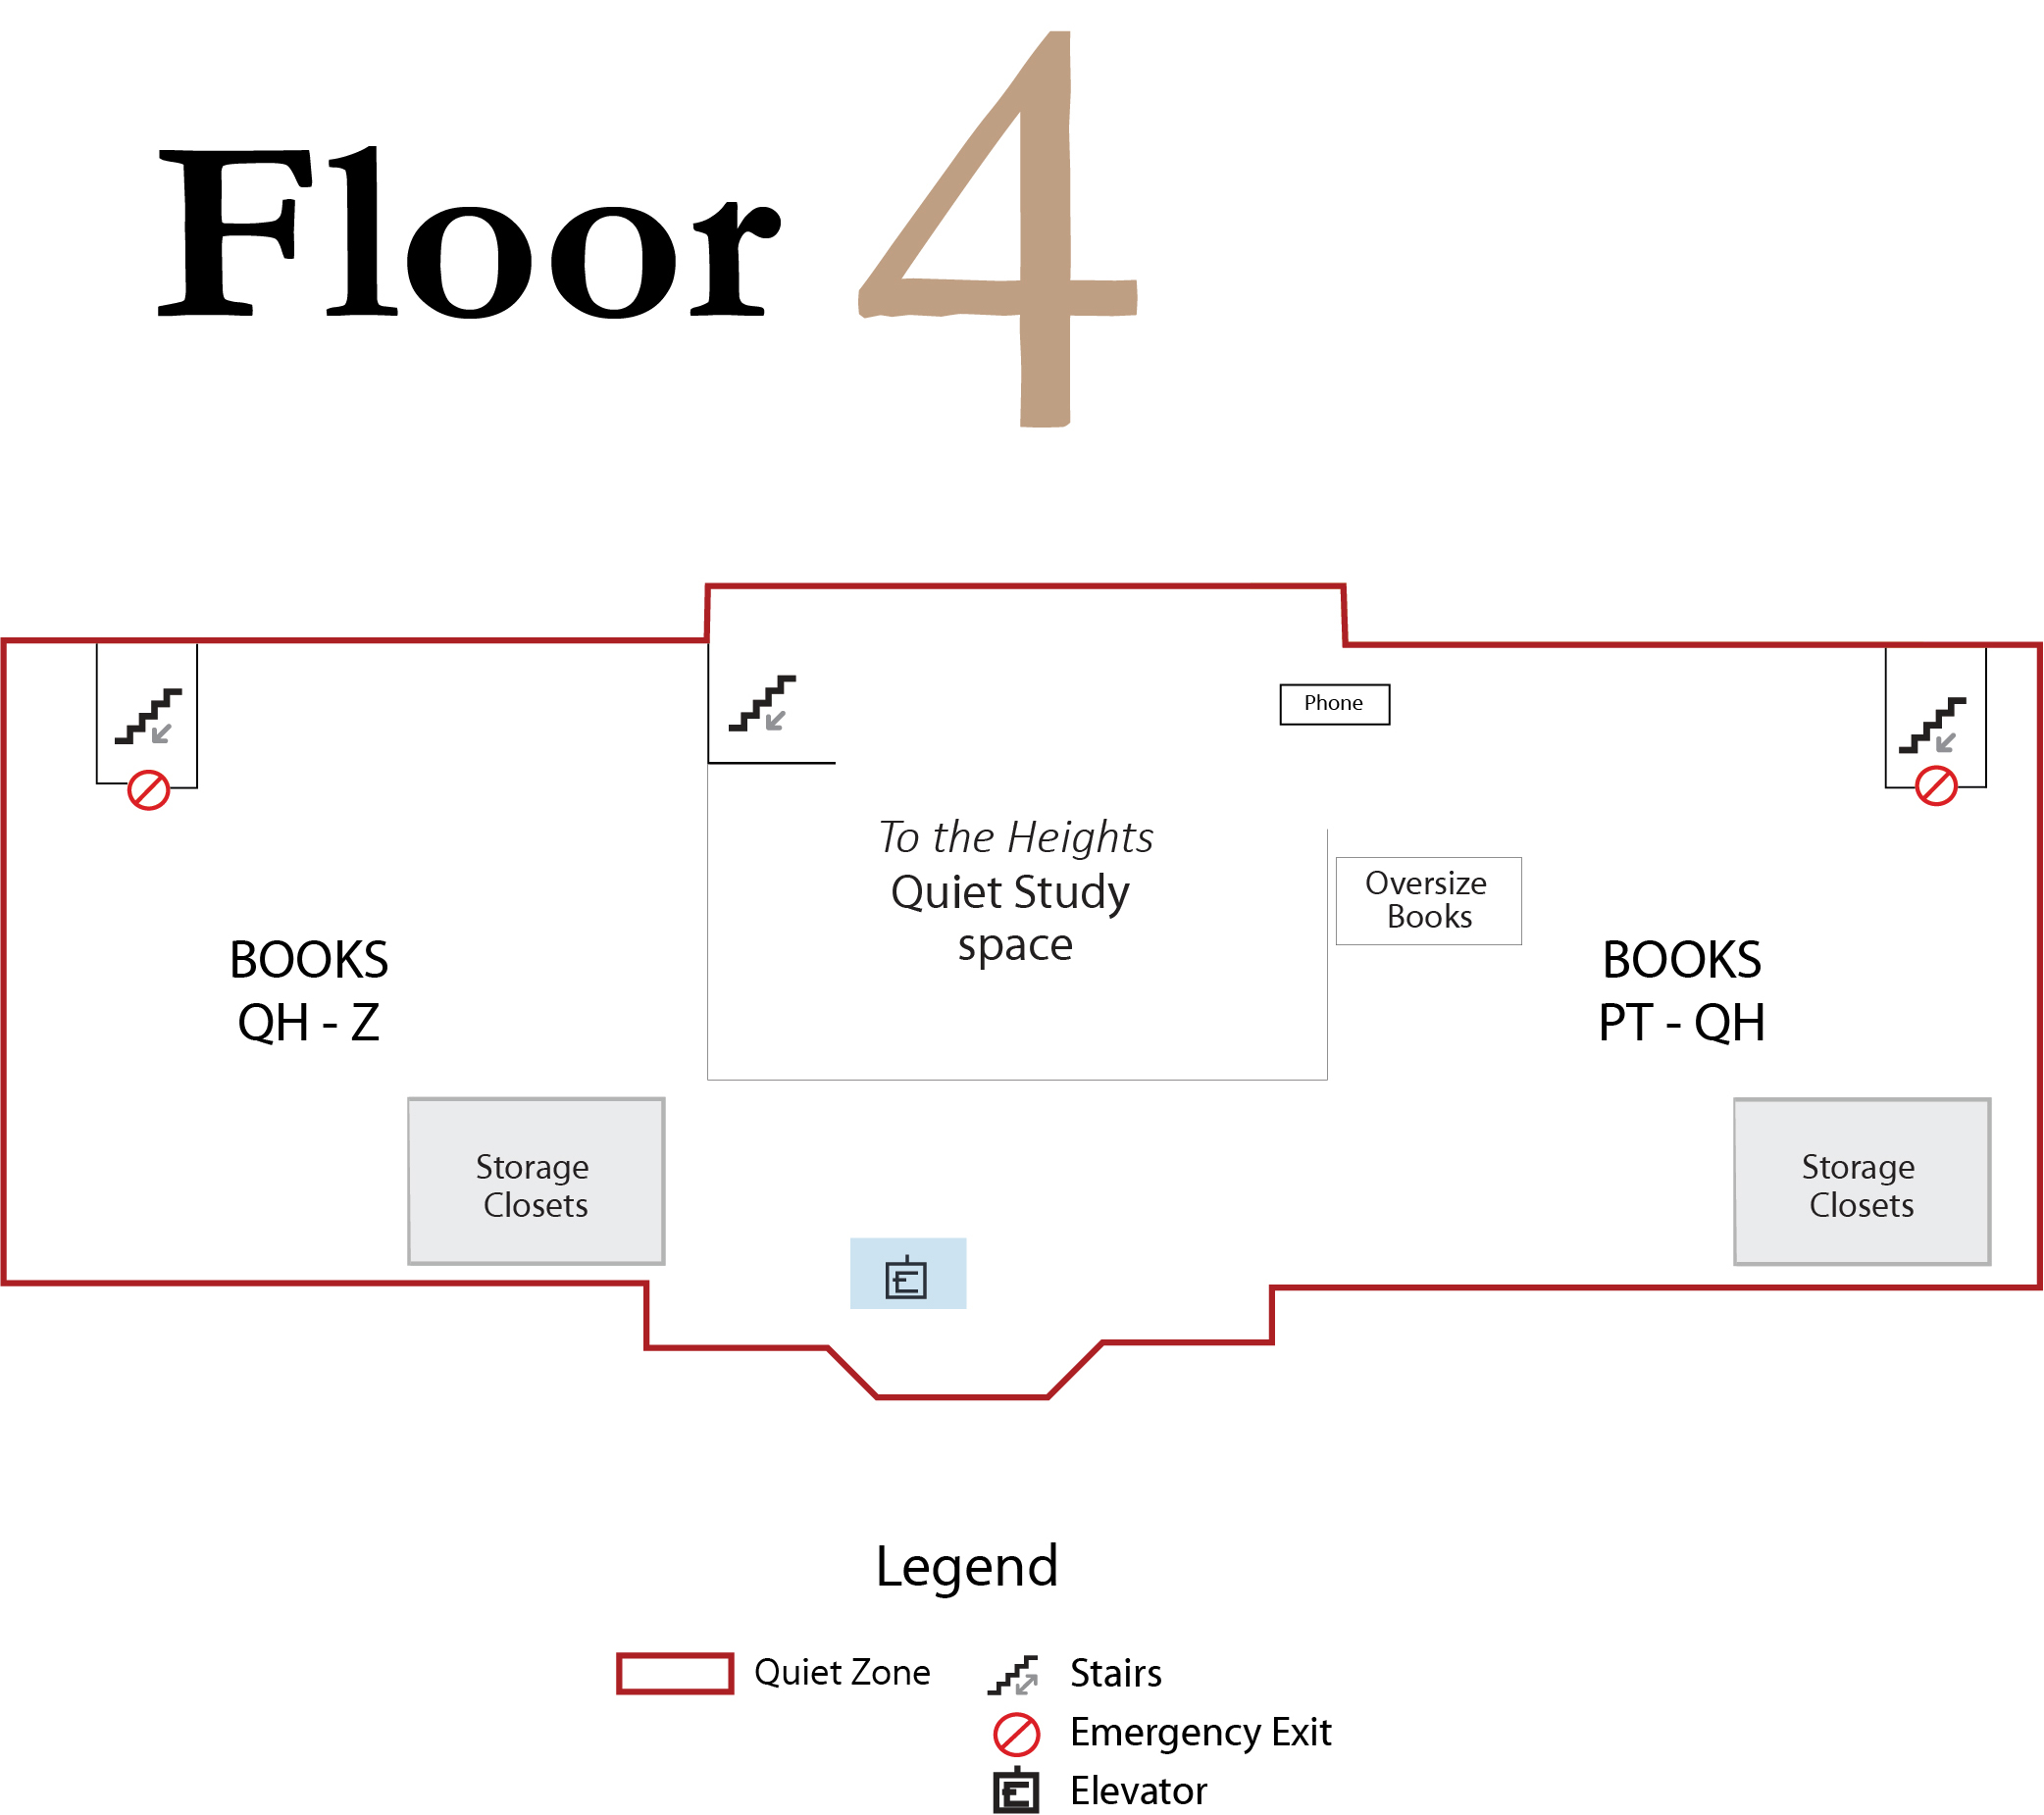 Library Map Floor 4